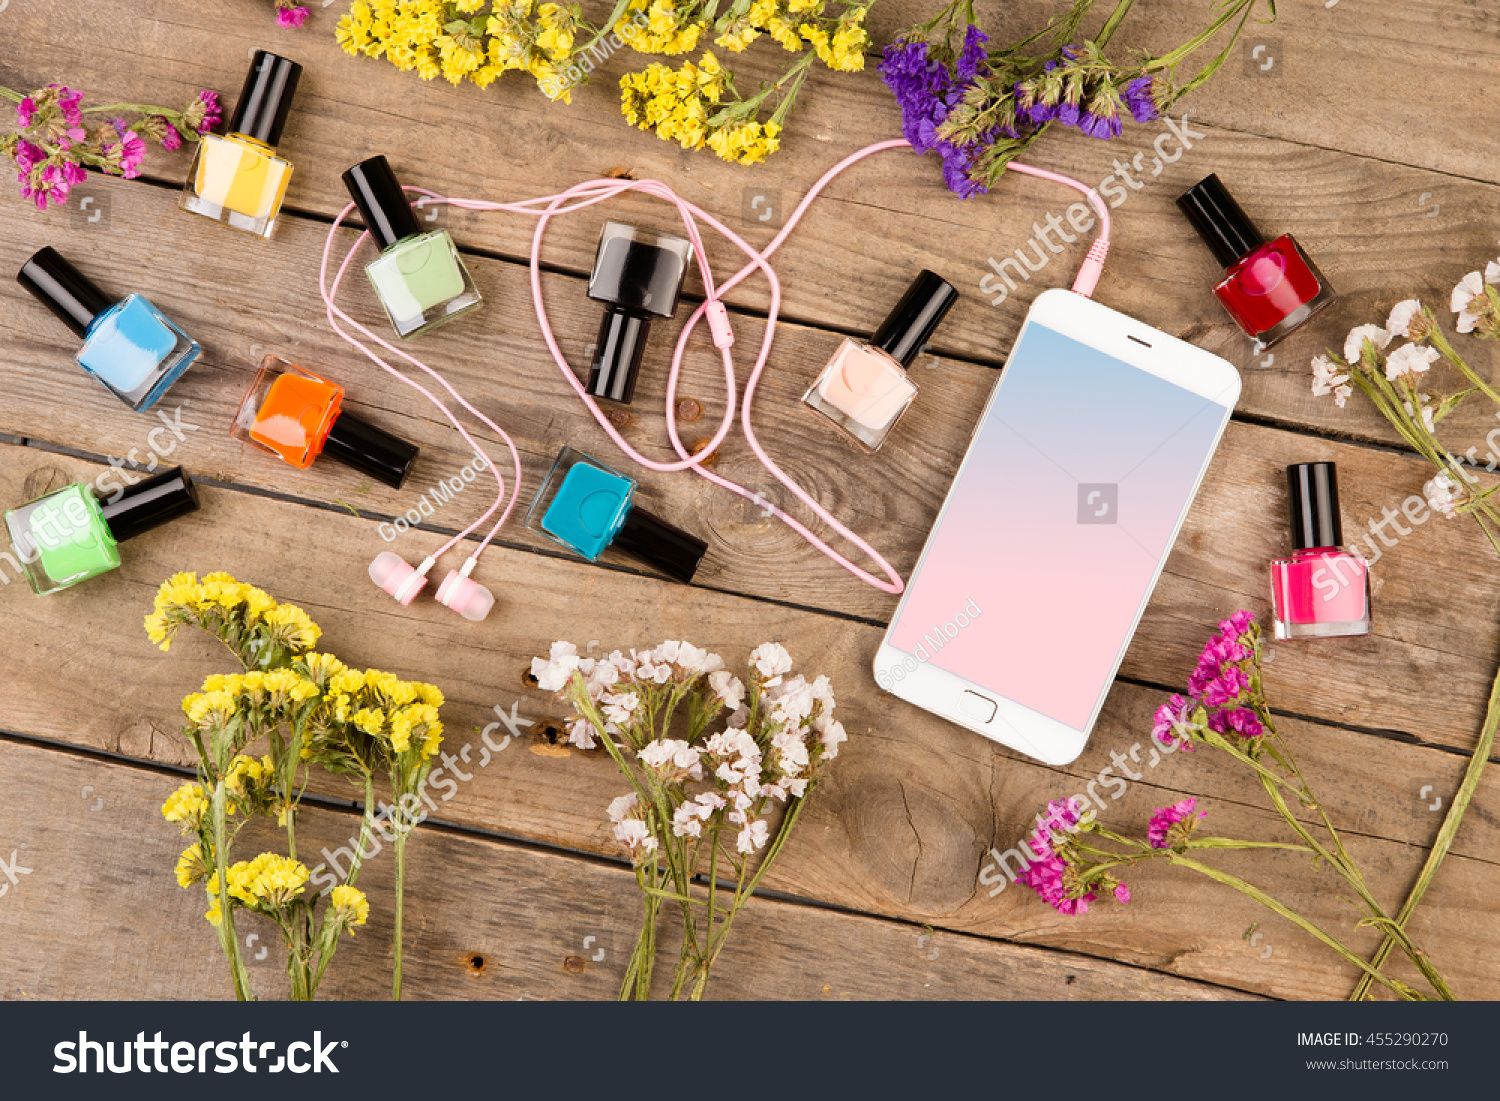 Bottles colorful nail polish smart phone stock photo royalty free bottles of colorful nail polish smart phone headphones and flowers on brown wooden table izmirmasajfo